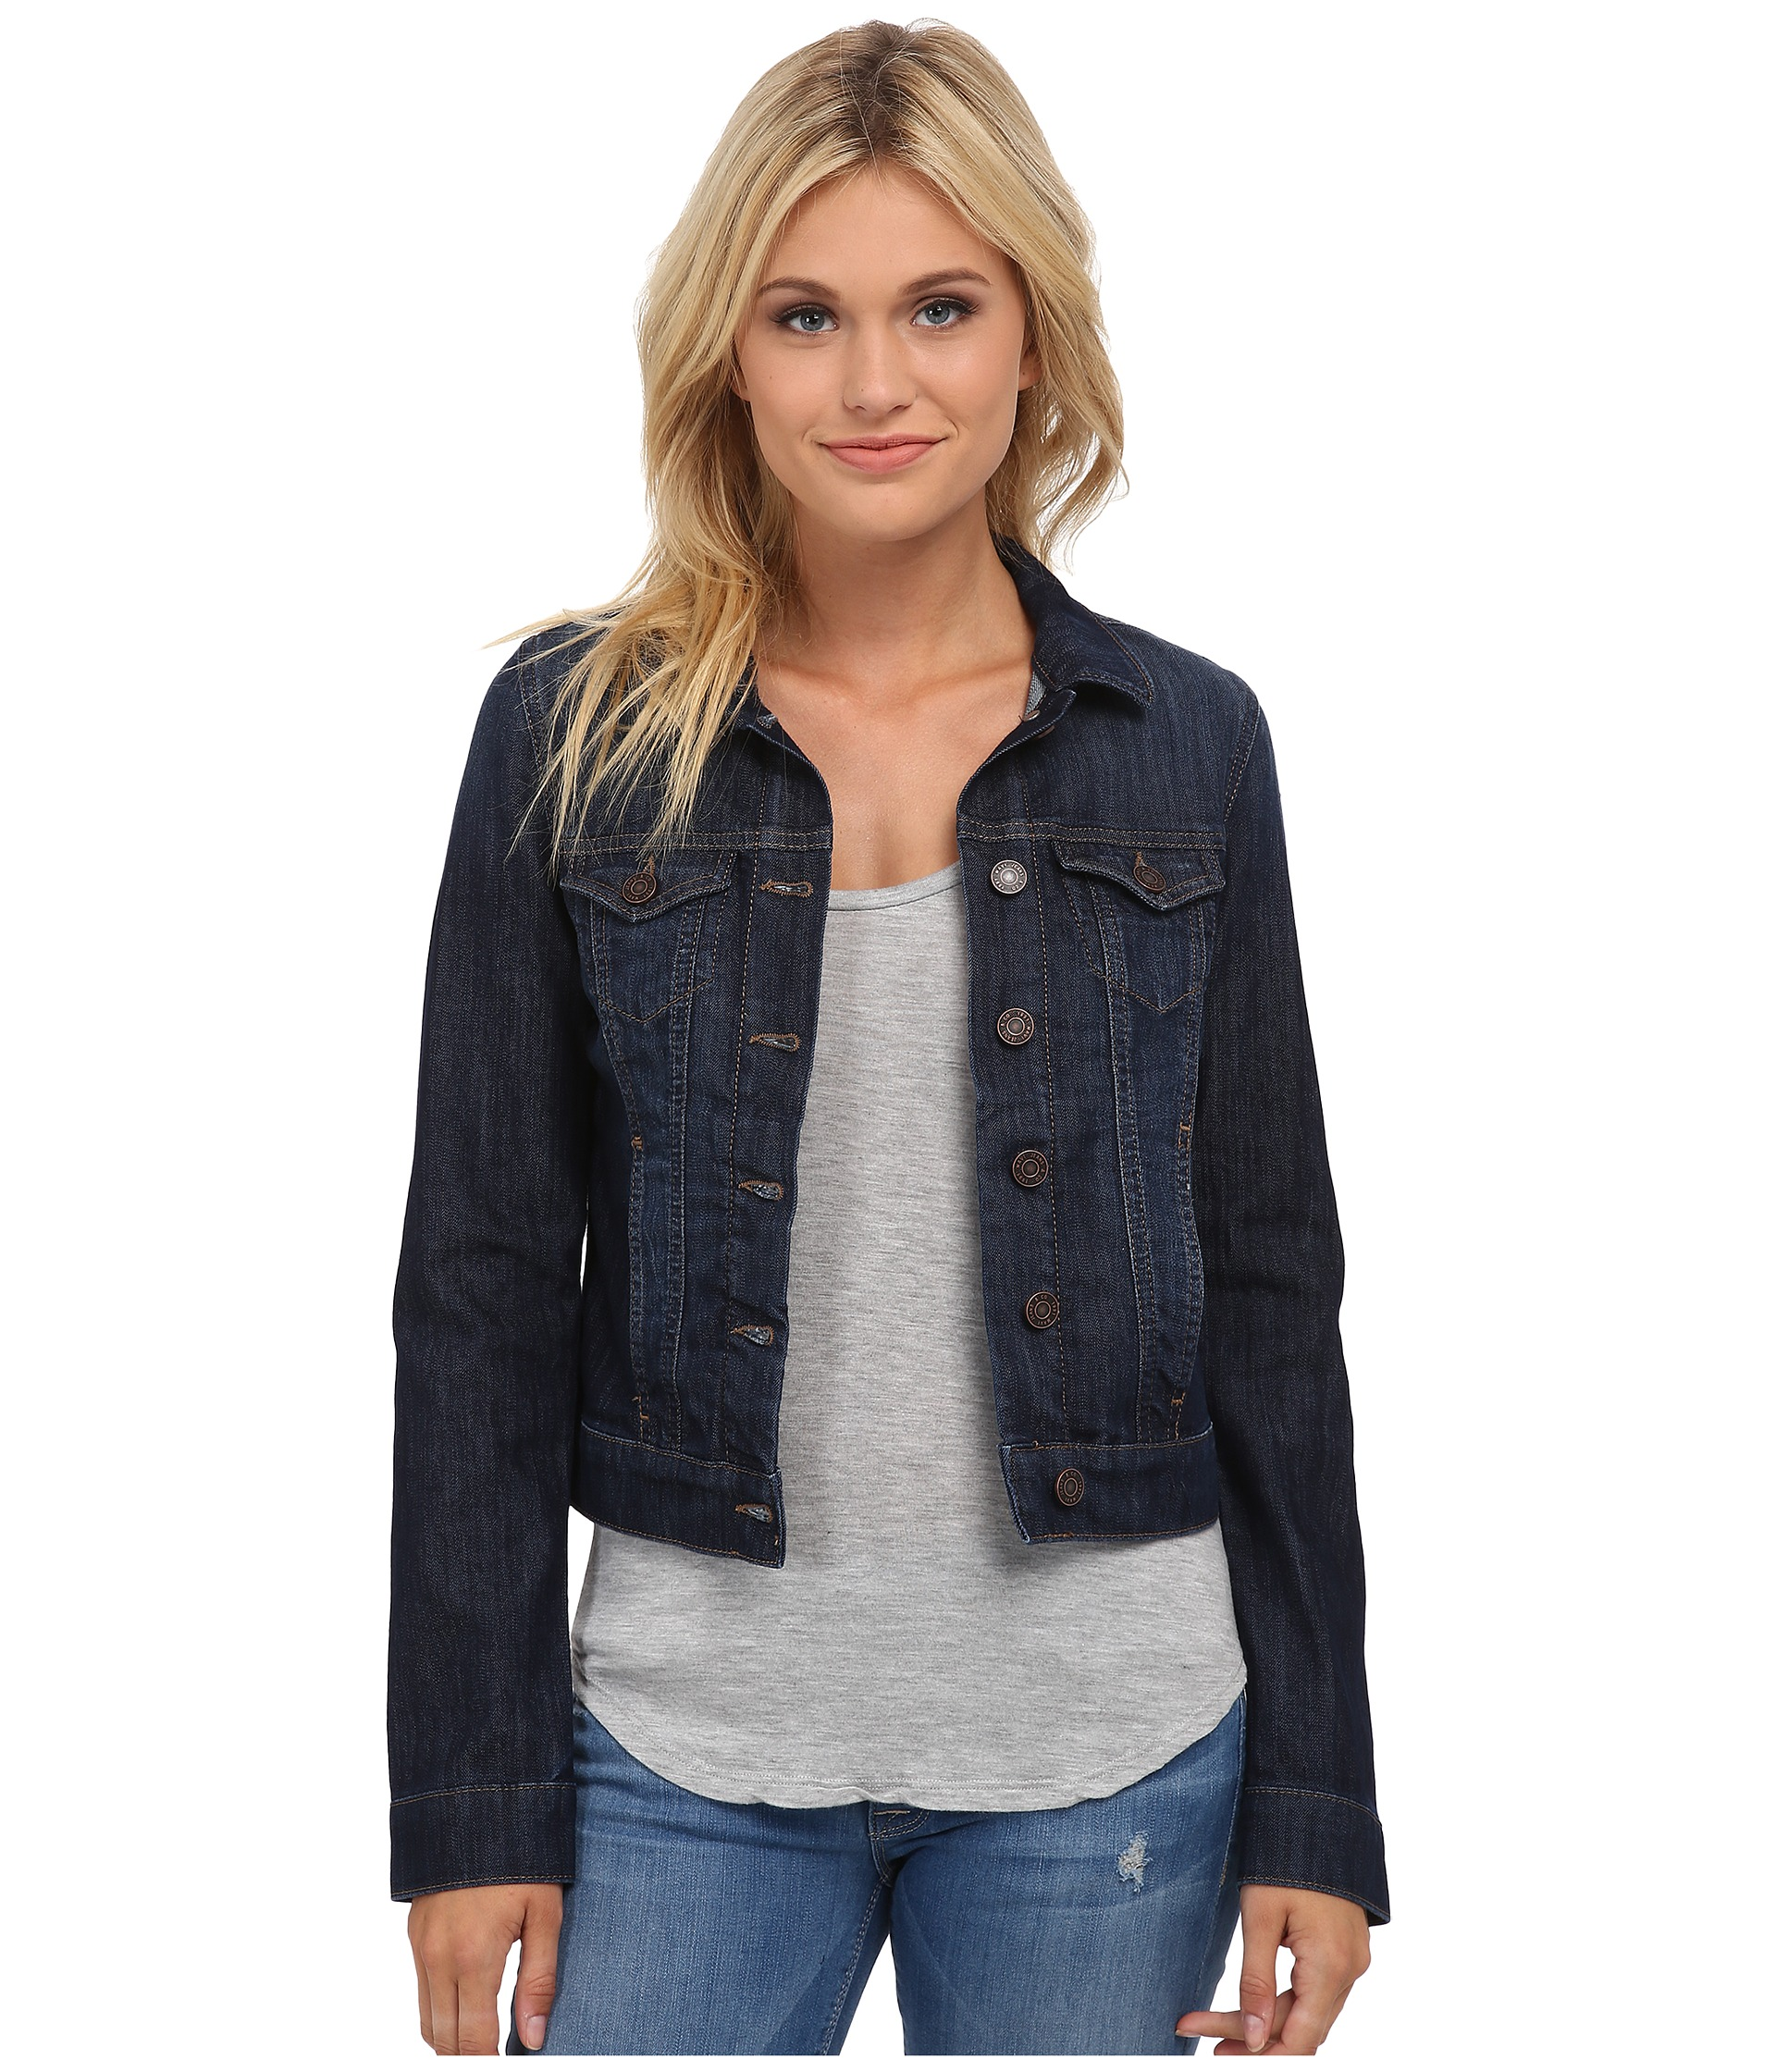 Mavi Jeans Samantha Denim Jacket in Dark Nolita - Zappos.com Free ...